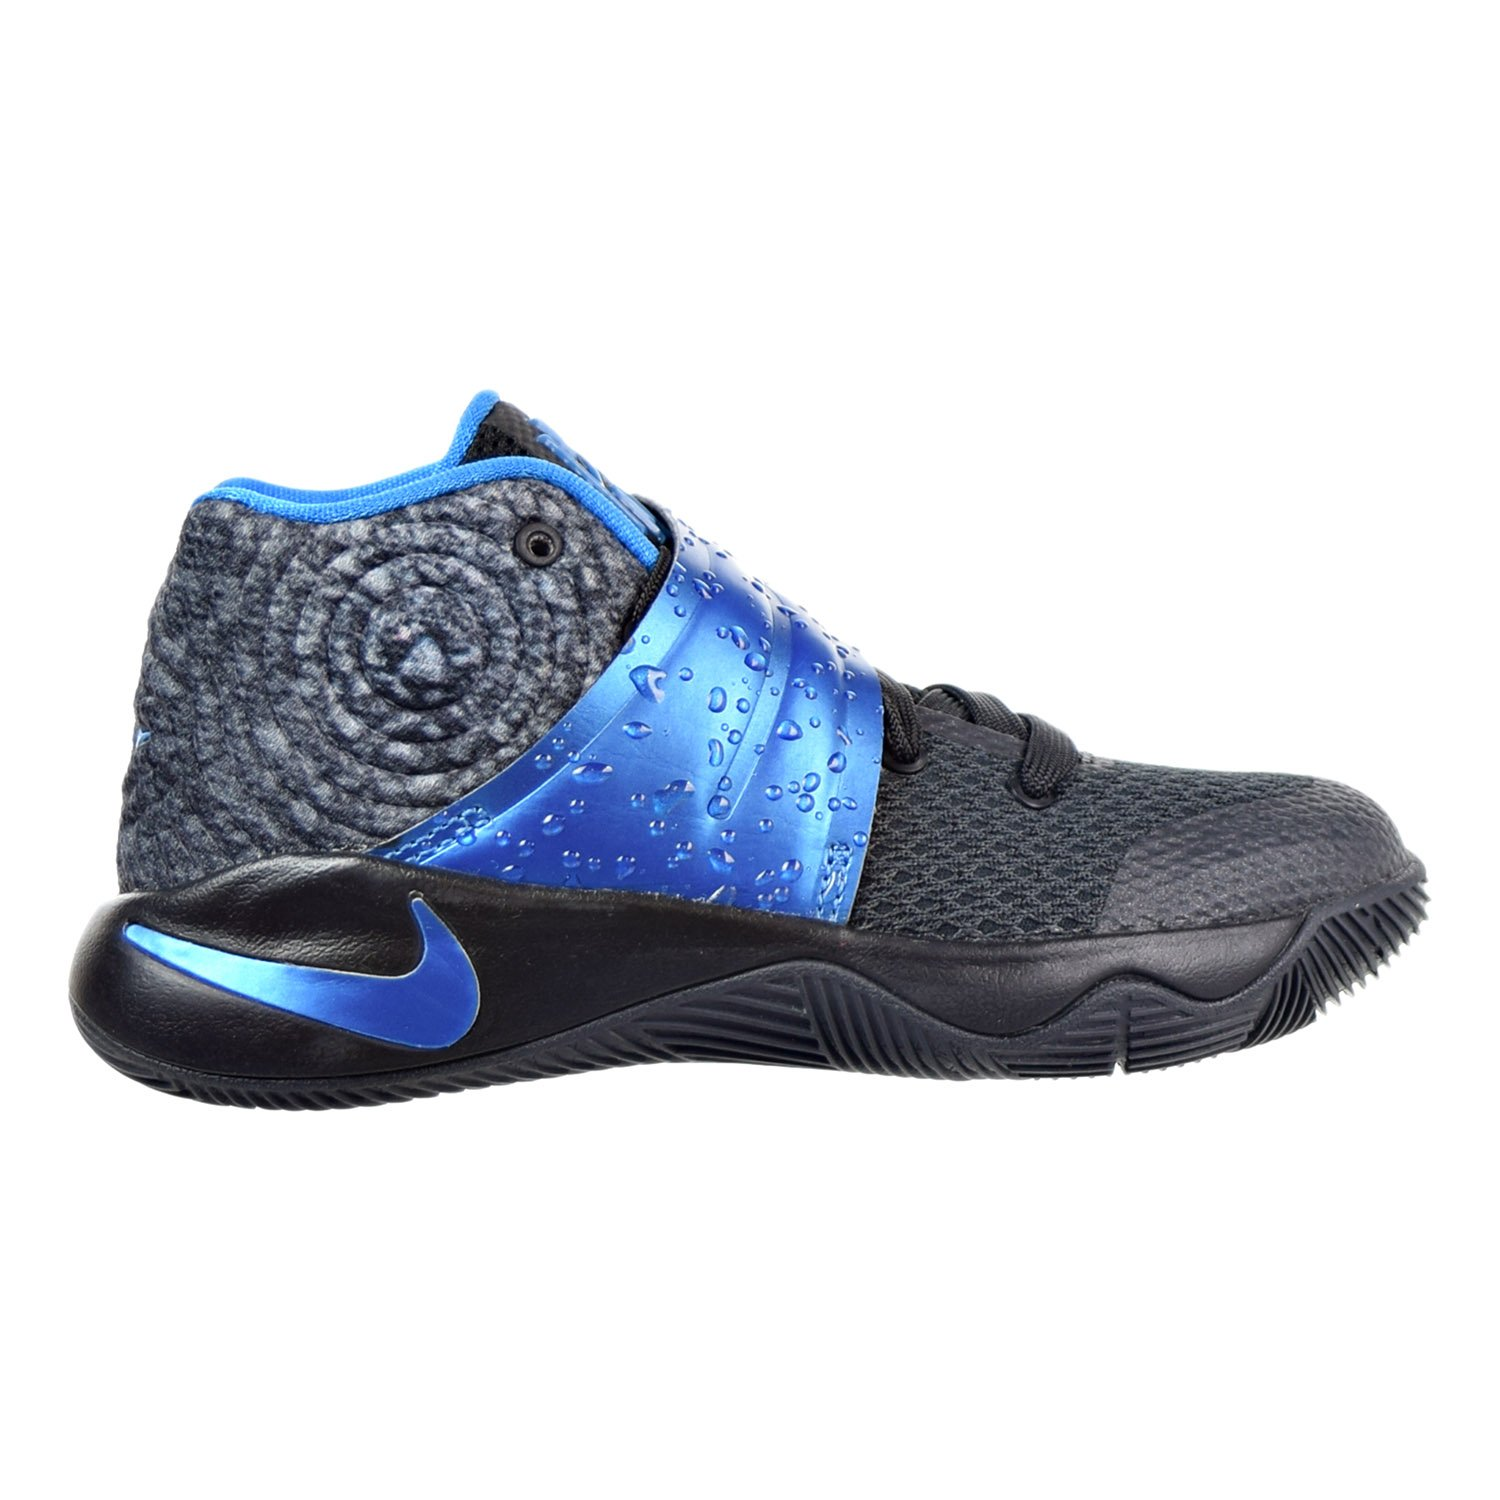 timeless design eaac6 23e45 Amazon.com | Nike Kyrie 2 Little Kid's (PS) Shoes Black/Blue ...